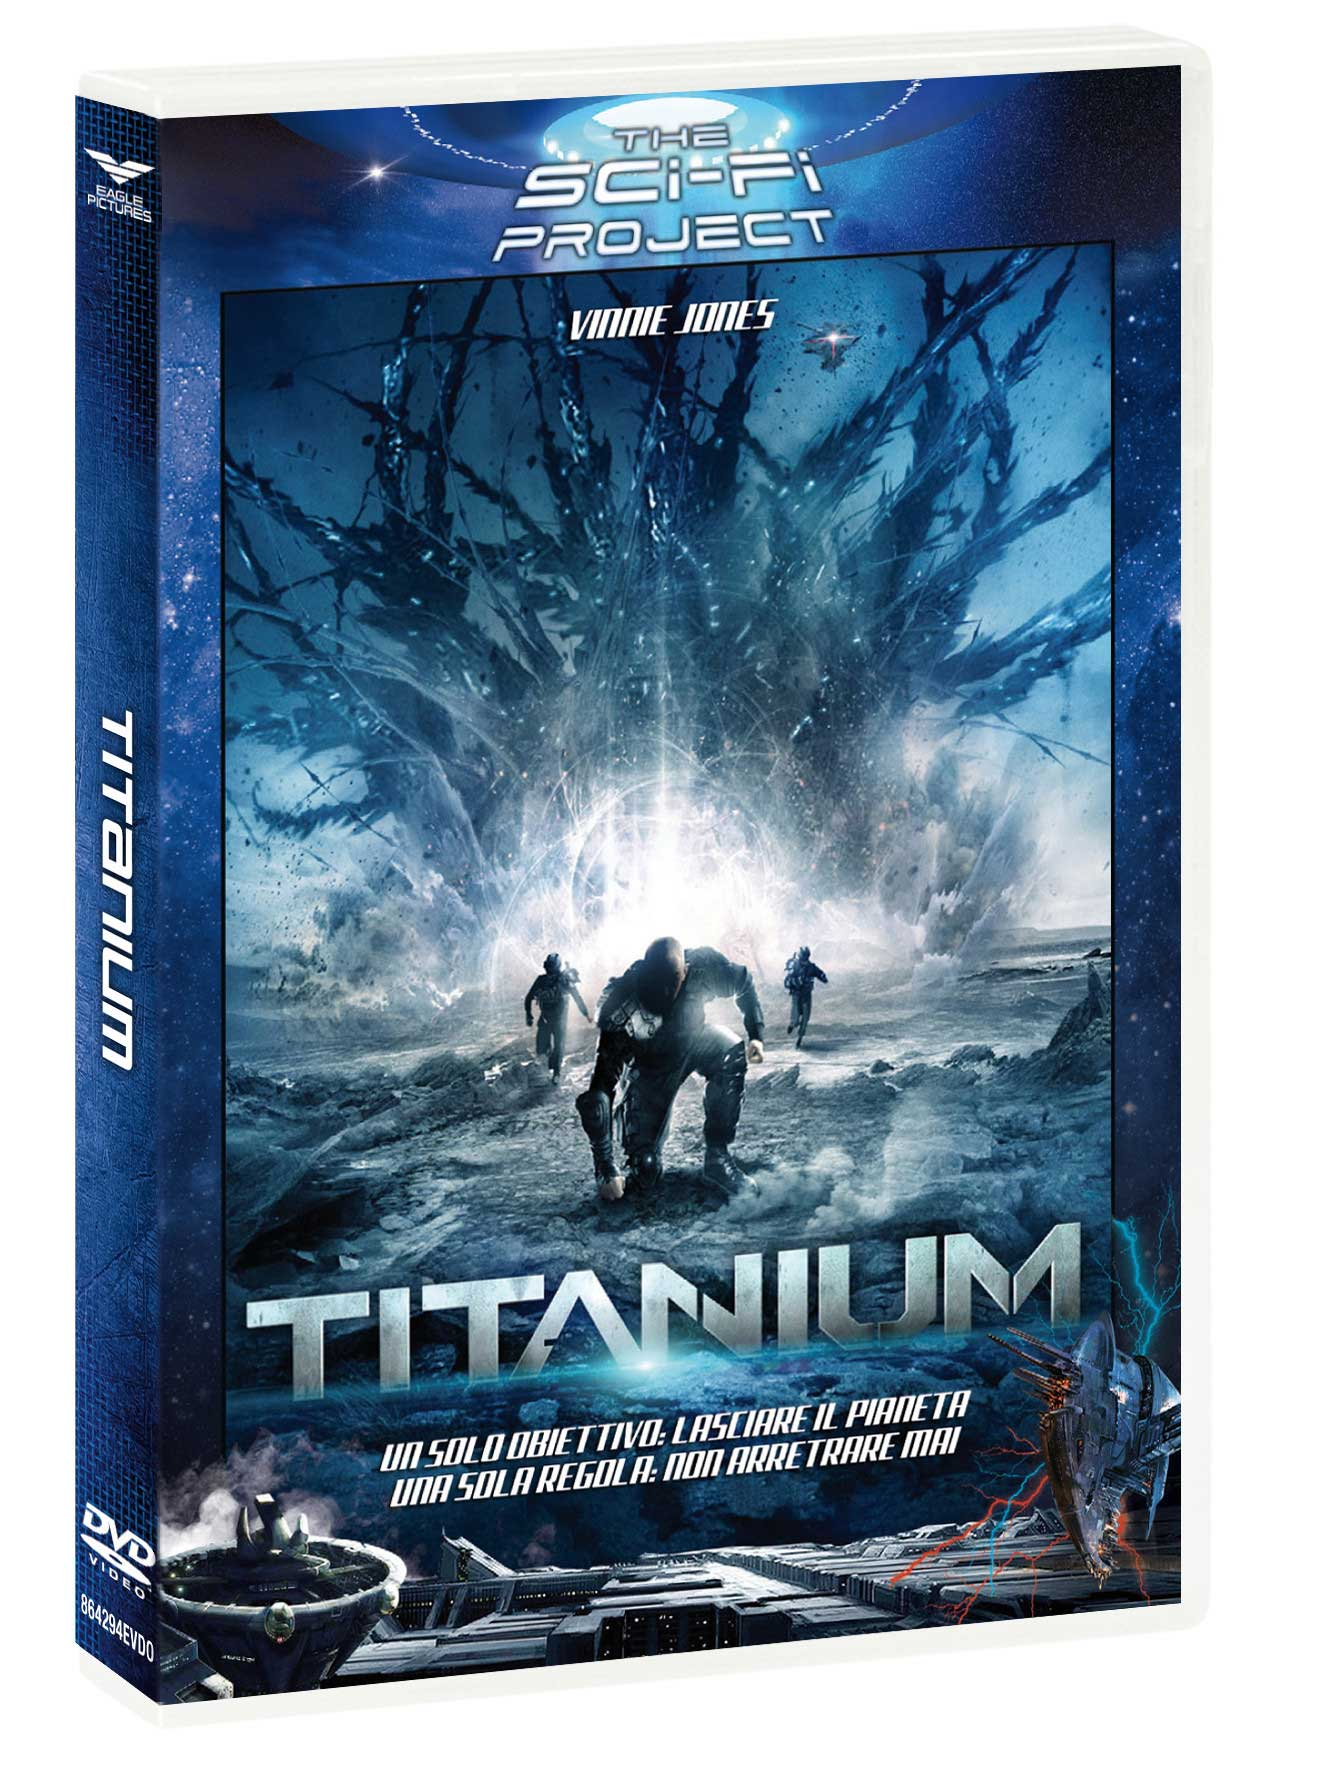 TITANIUM (SCI-FI PROJECT) (DVD)